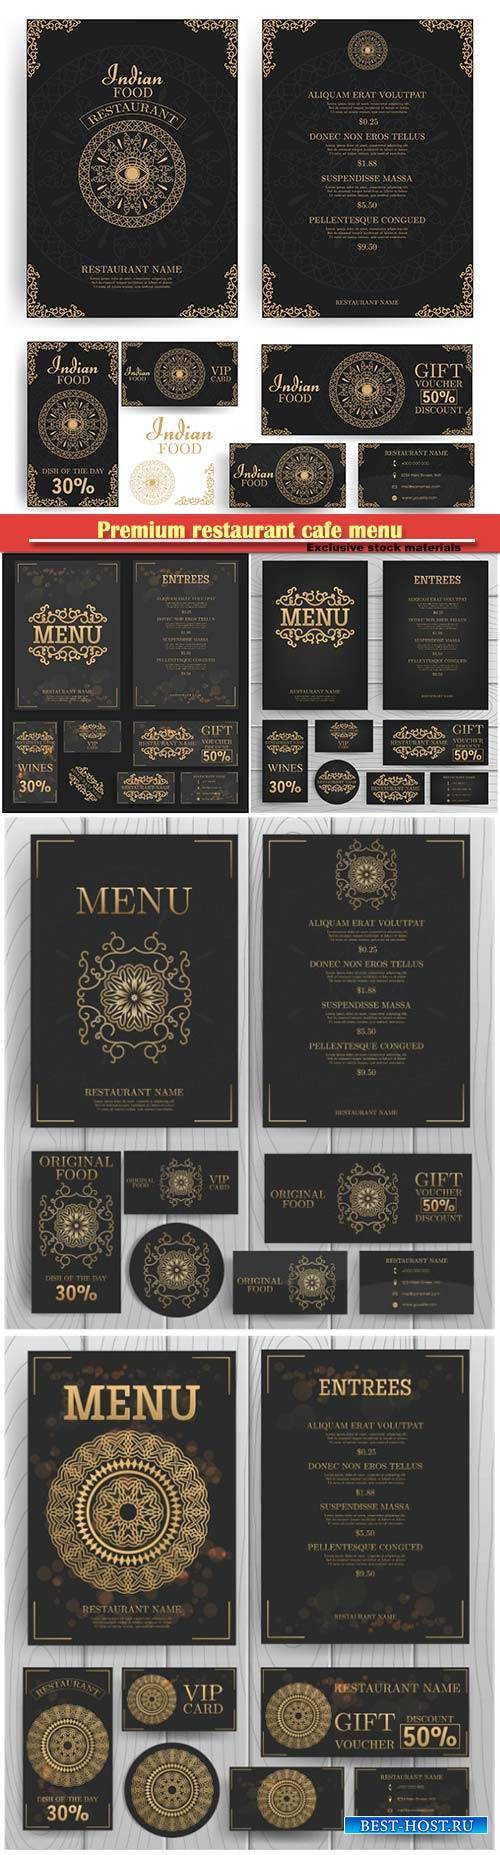 Premium restaurant cafe menu, template vector design